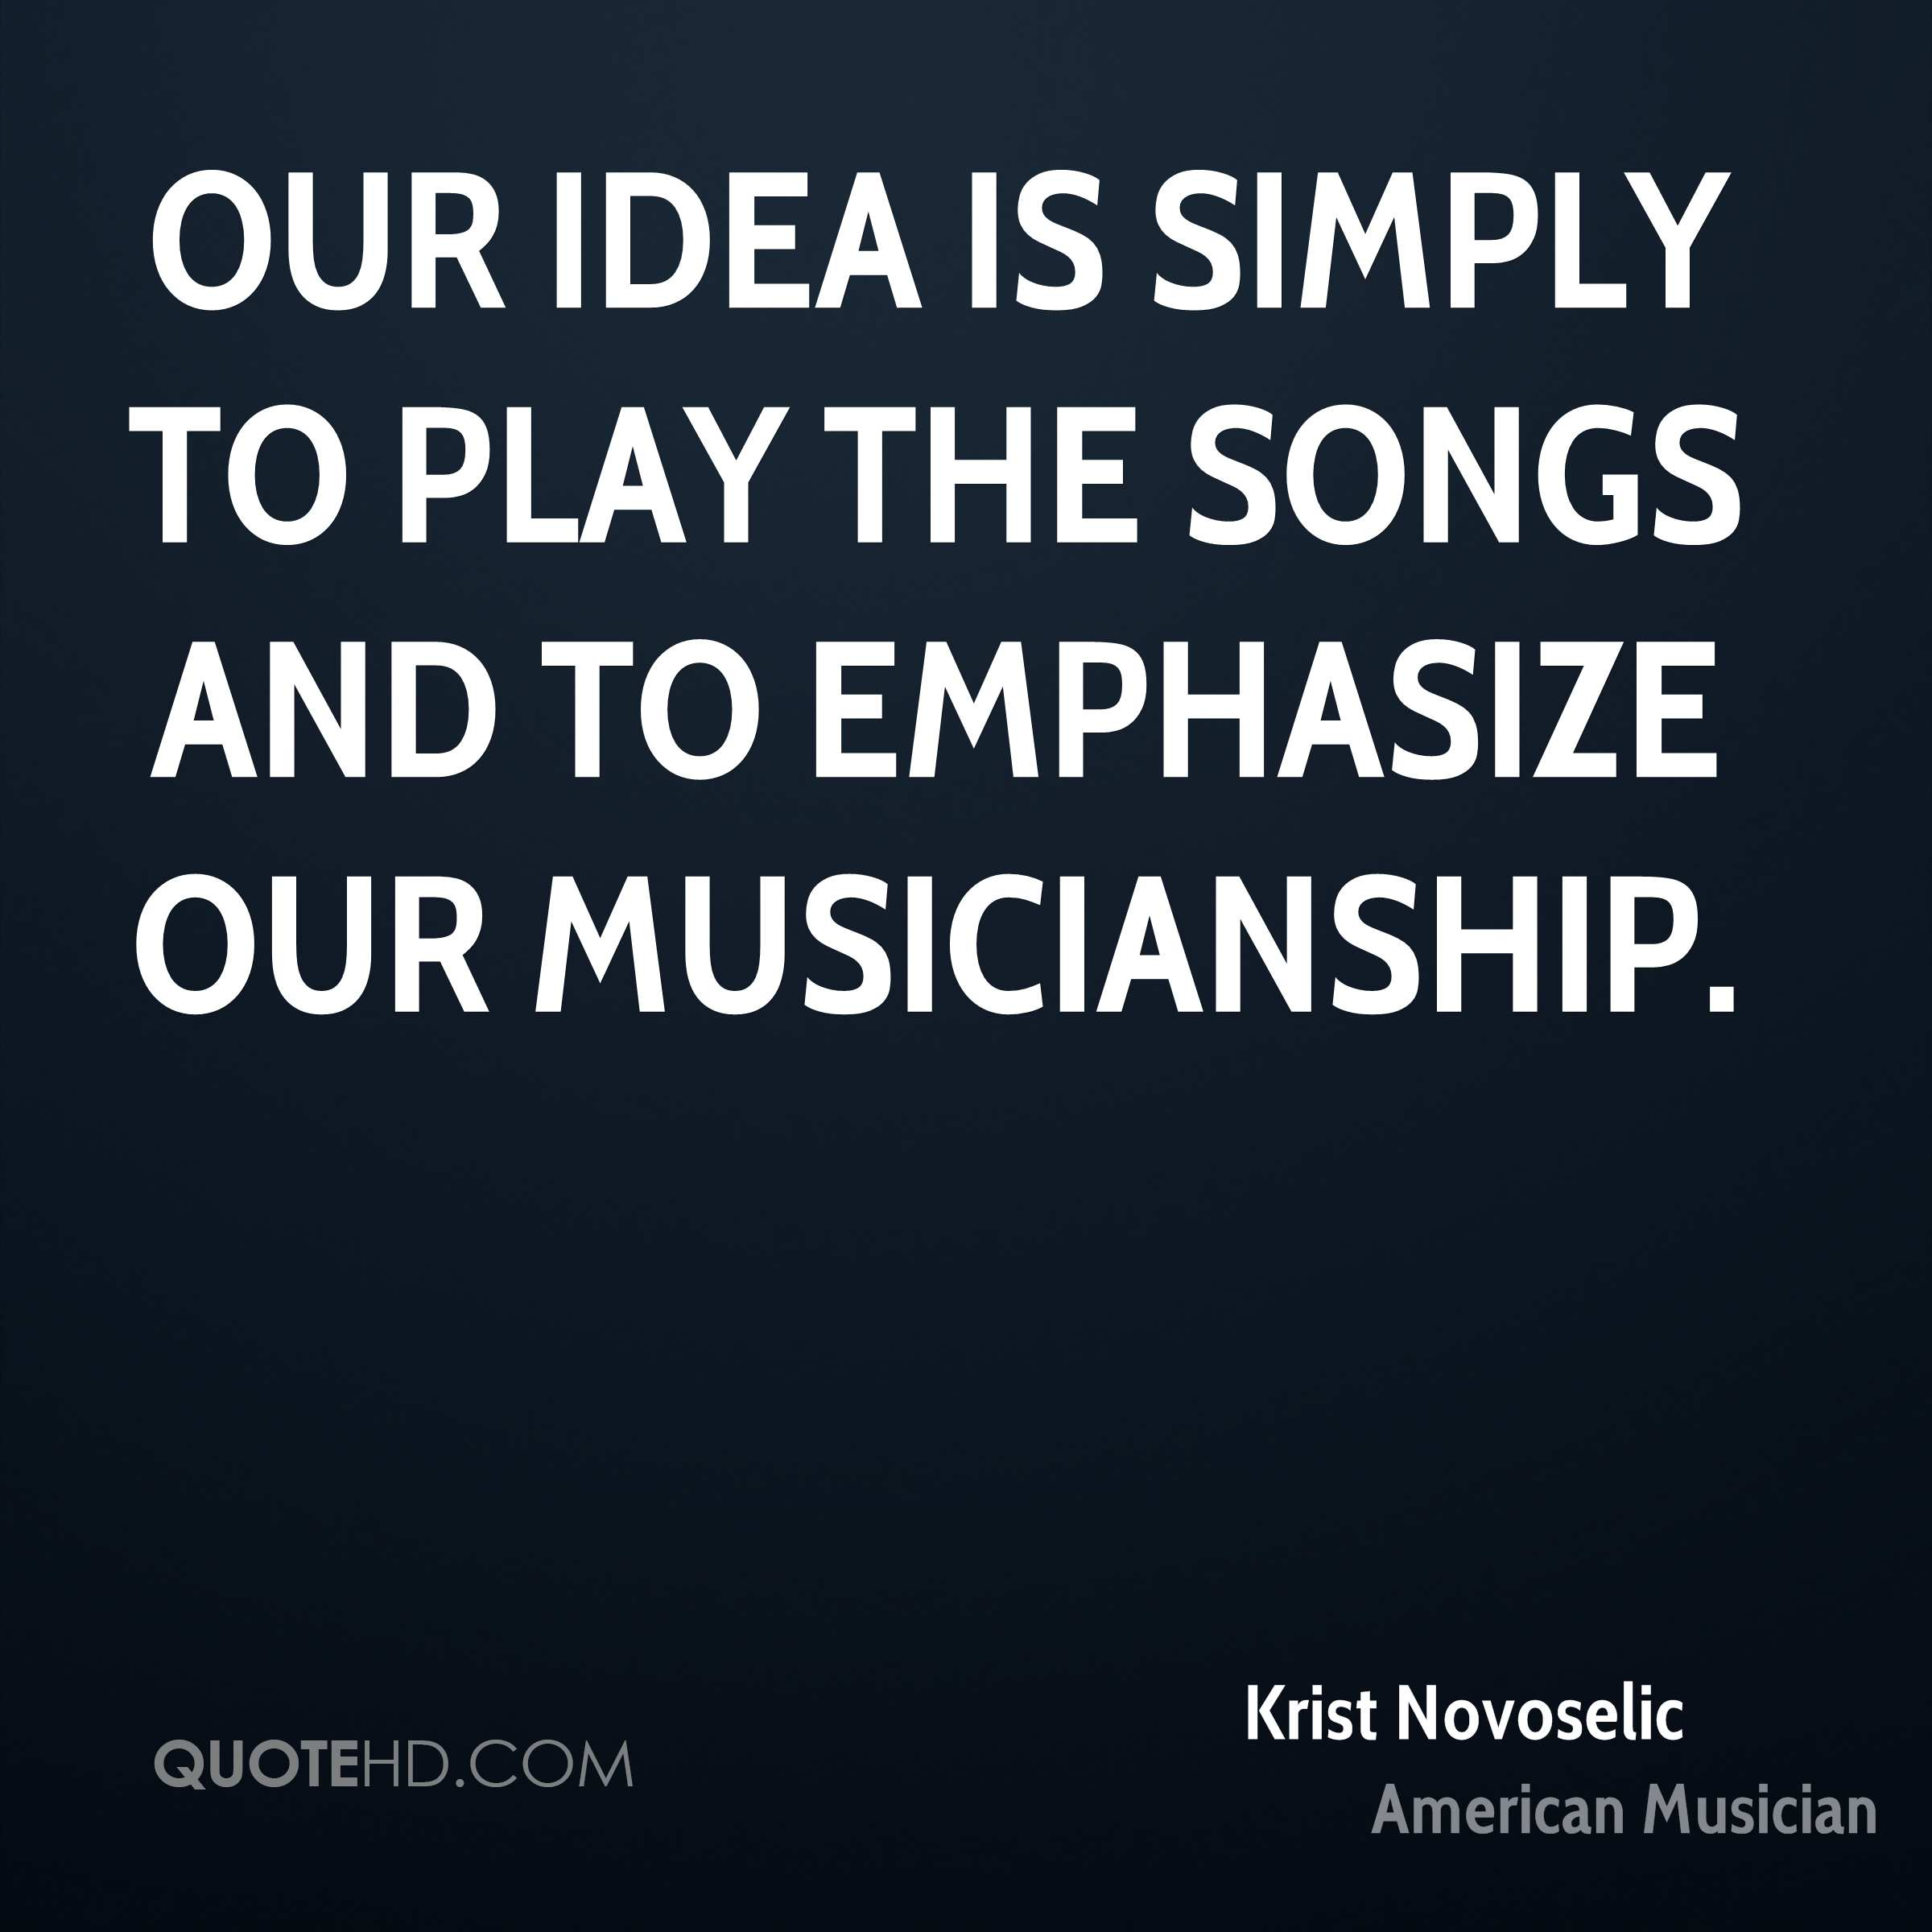 Our idea is simply to play the songs and to emphasize our musicianship.